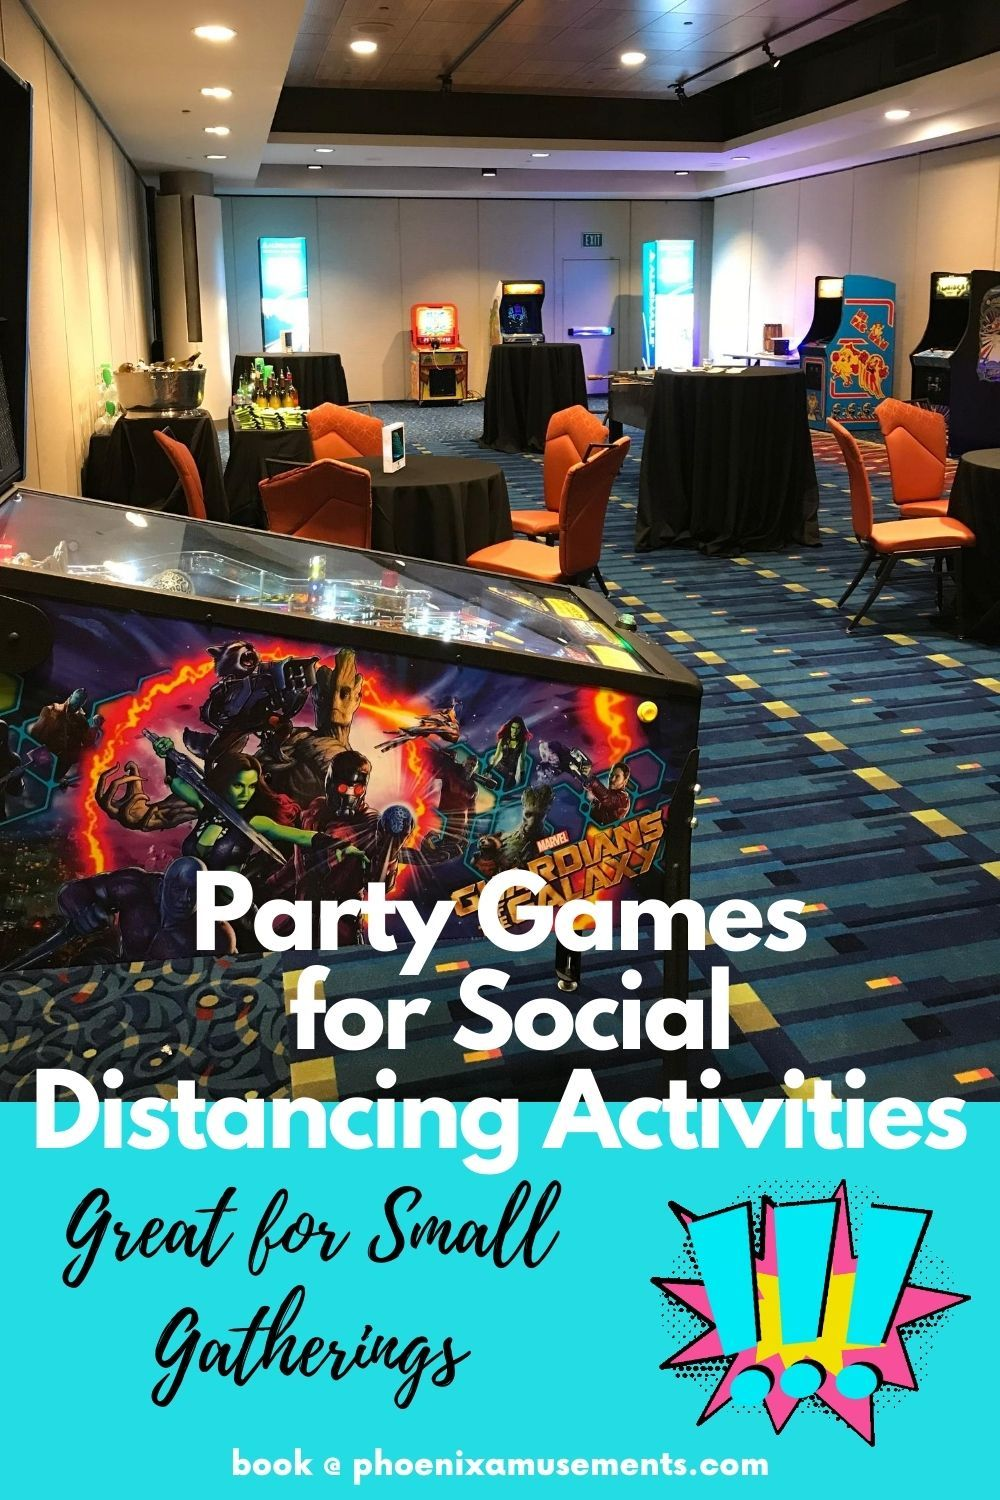 Party Games for Social Distancing Activities. Need Ideas for small gatherings or parties? Check out some of these party game suggestions for fun activities!  #partyplanners #eventideas #funactivities #fungames #eventinspiration #corporateevents #eventservices #eventprofs #eventplanning #eventplanner